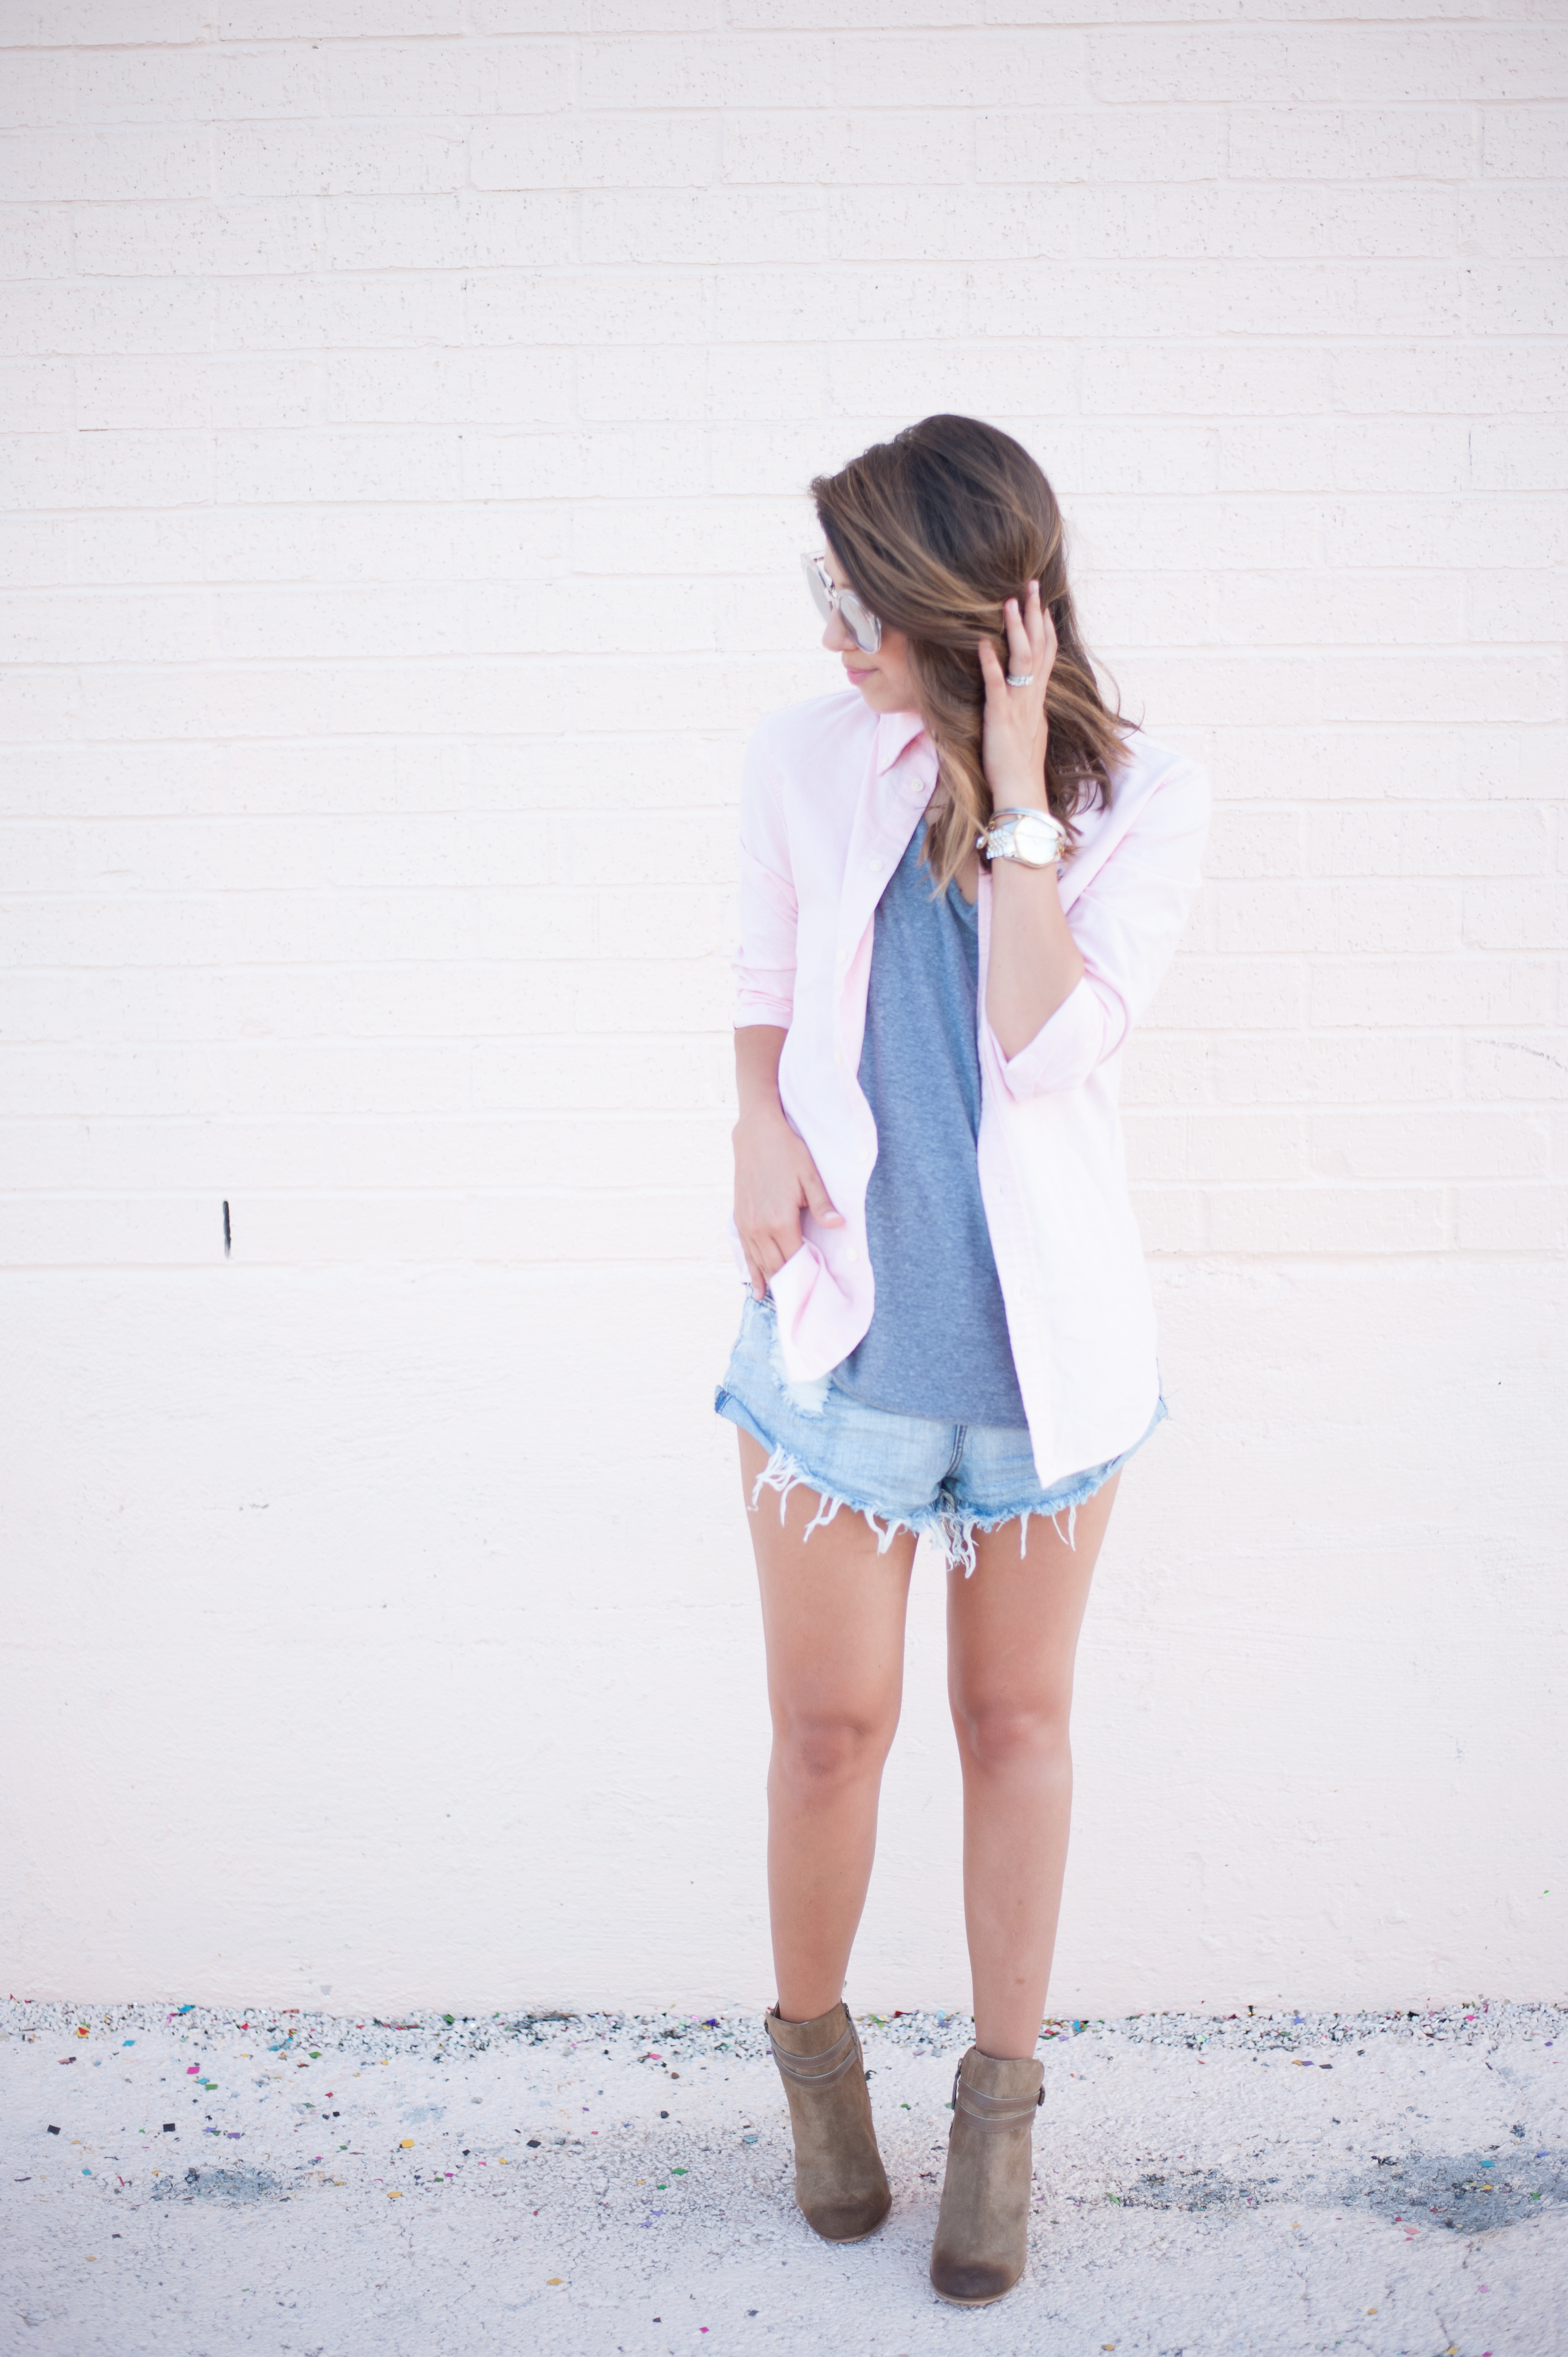 Dress Up Buttercup | Houston Fashion Blog - Dede Raad | Last of the Nsale